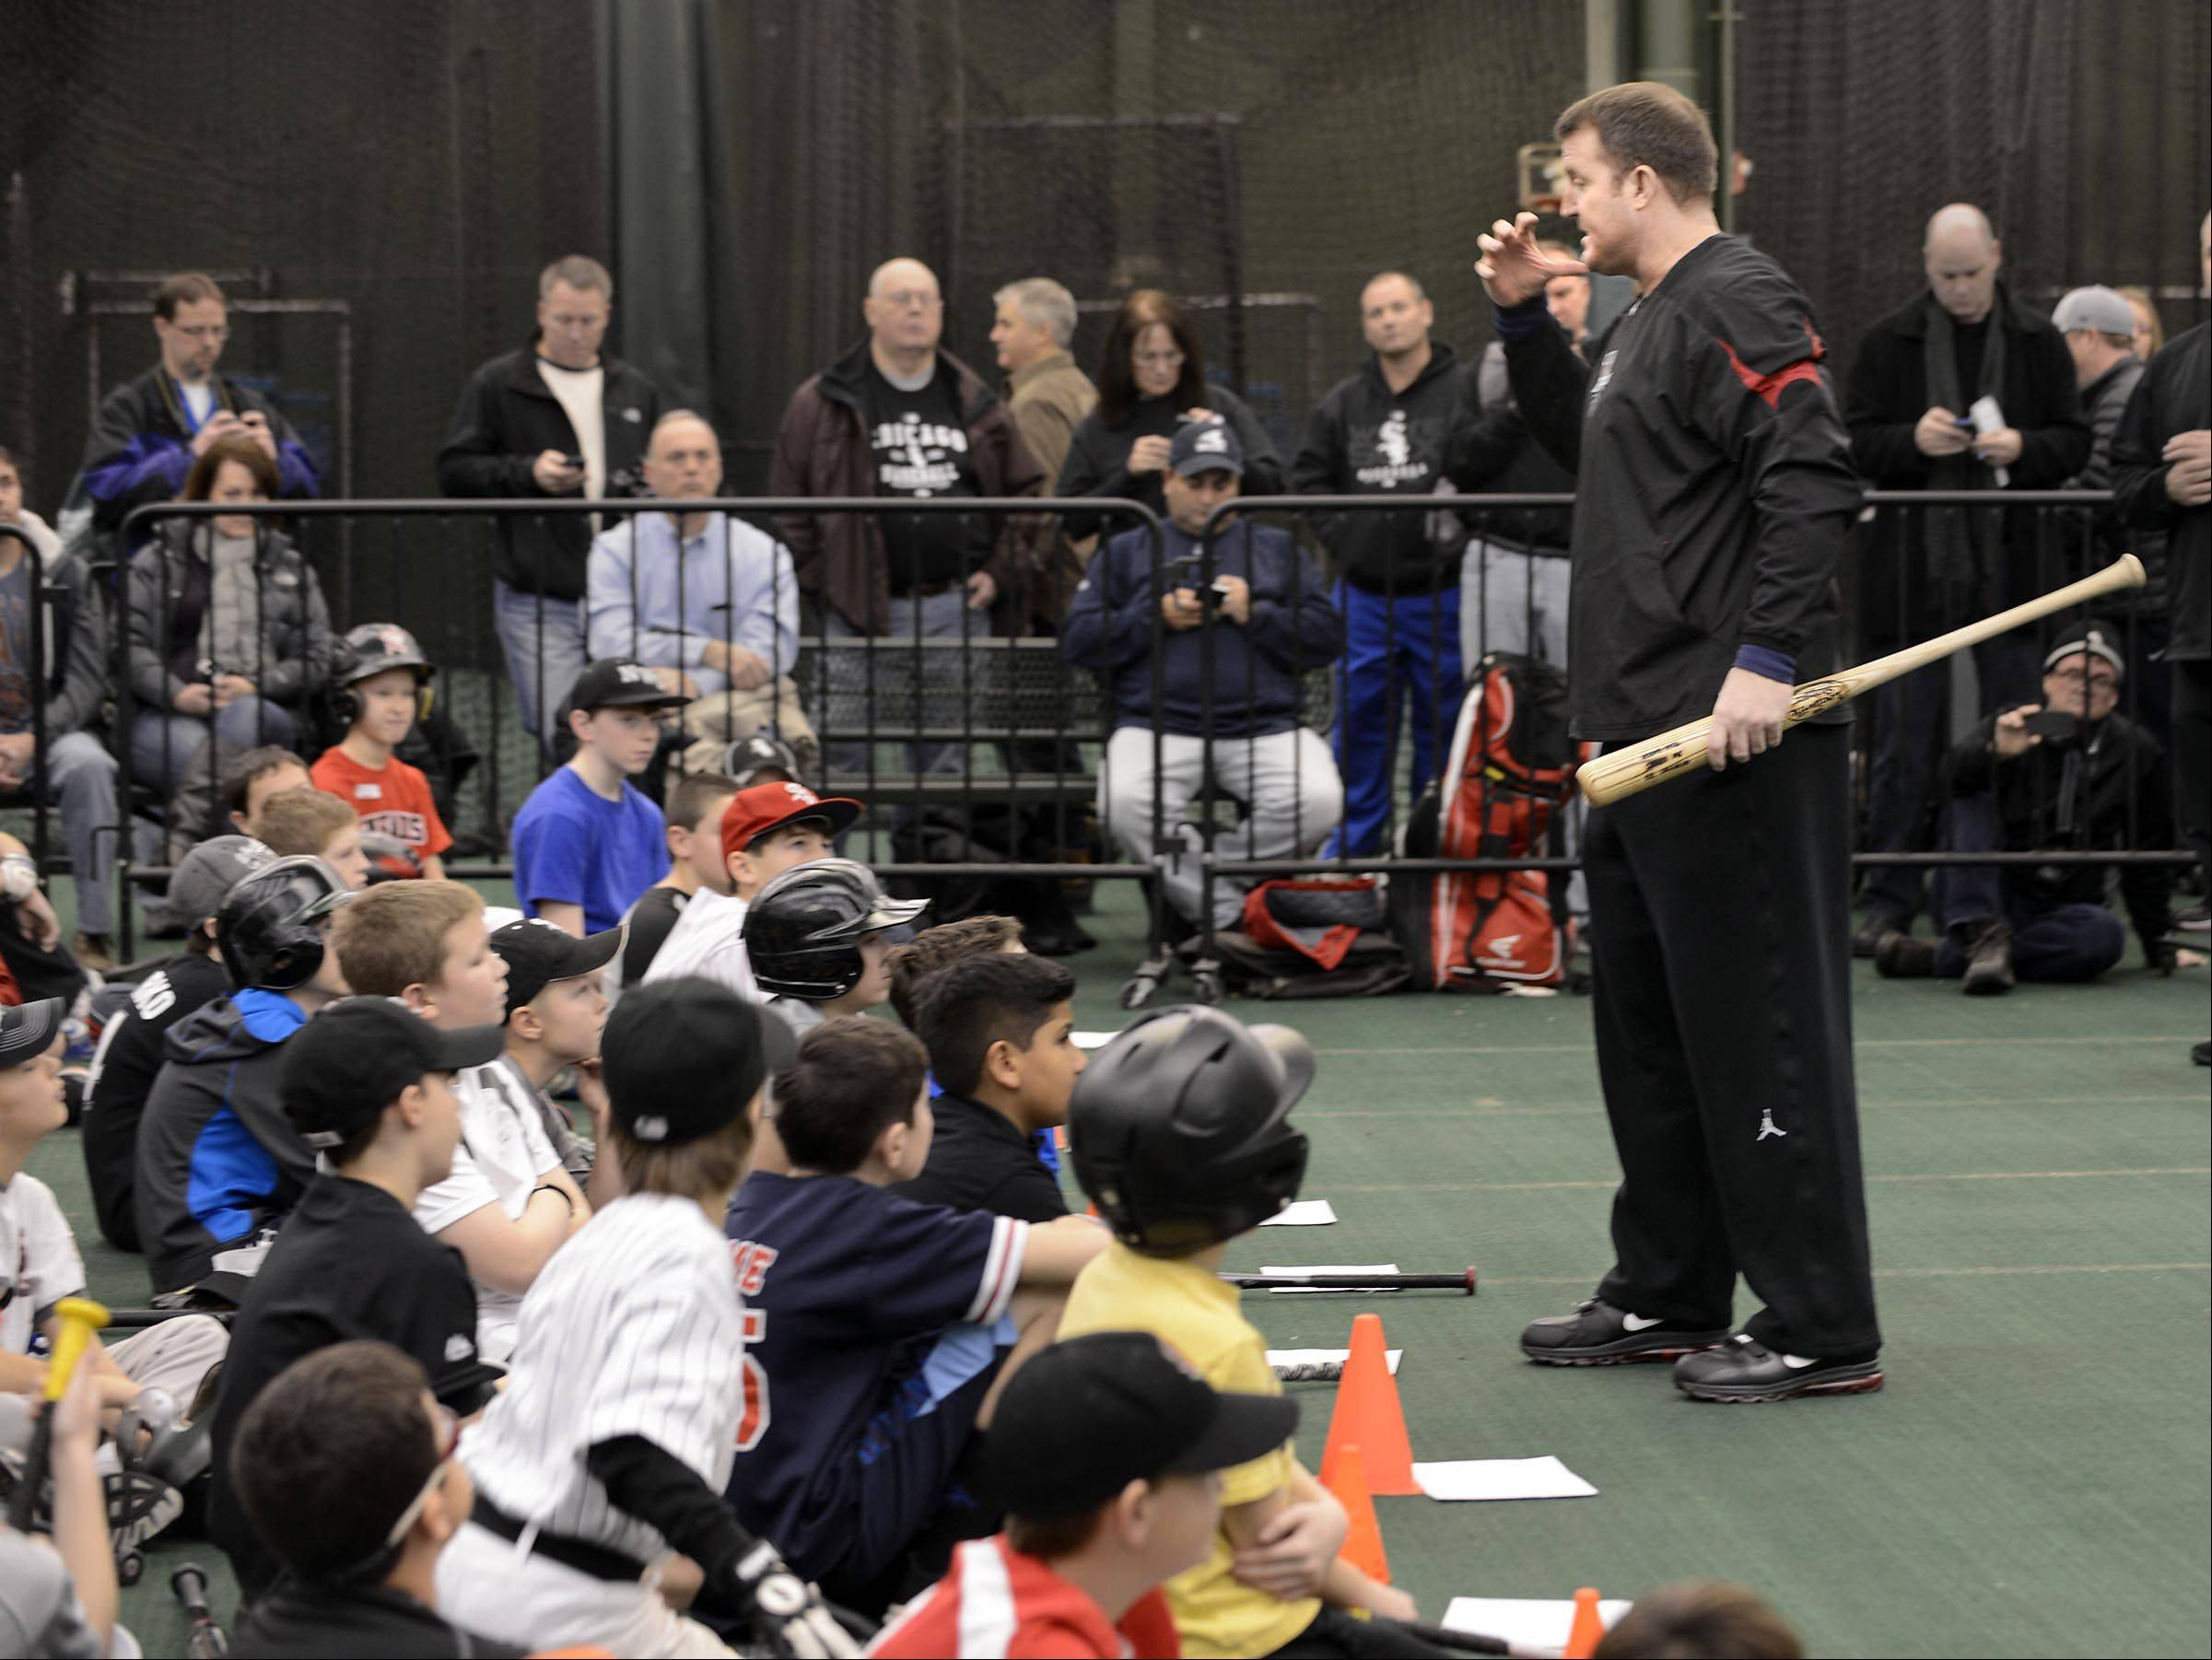 Five-time Major League Baseball All-Star and former Chicago White Sox slugger Jim Thome works with young players Sunday on hitting at the Chicago Bulls/White Sox Academy in Lisle. �This is great. It�s fun to give back,� Thome said.